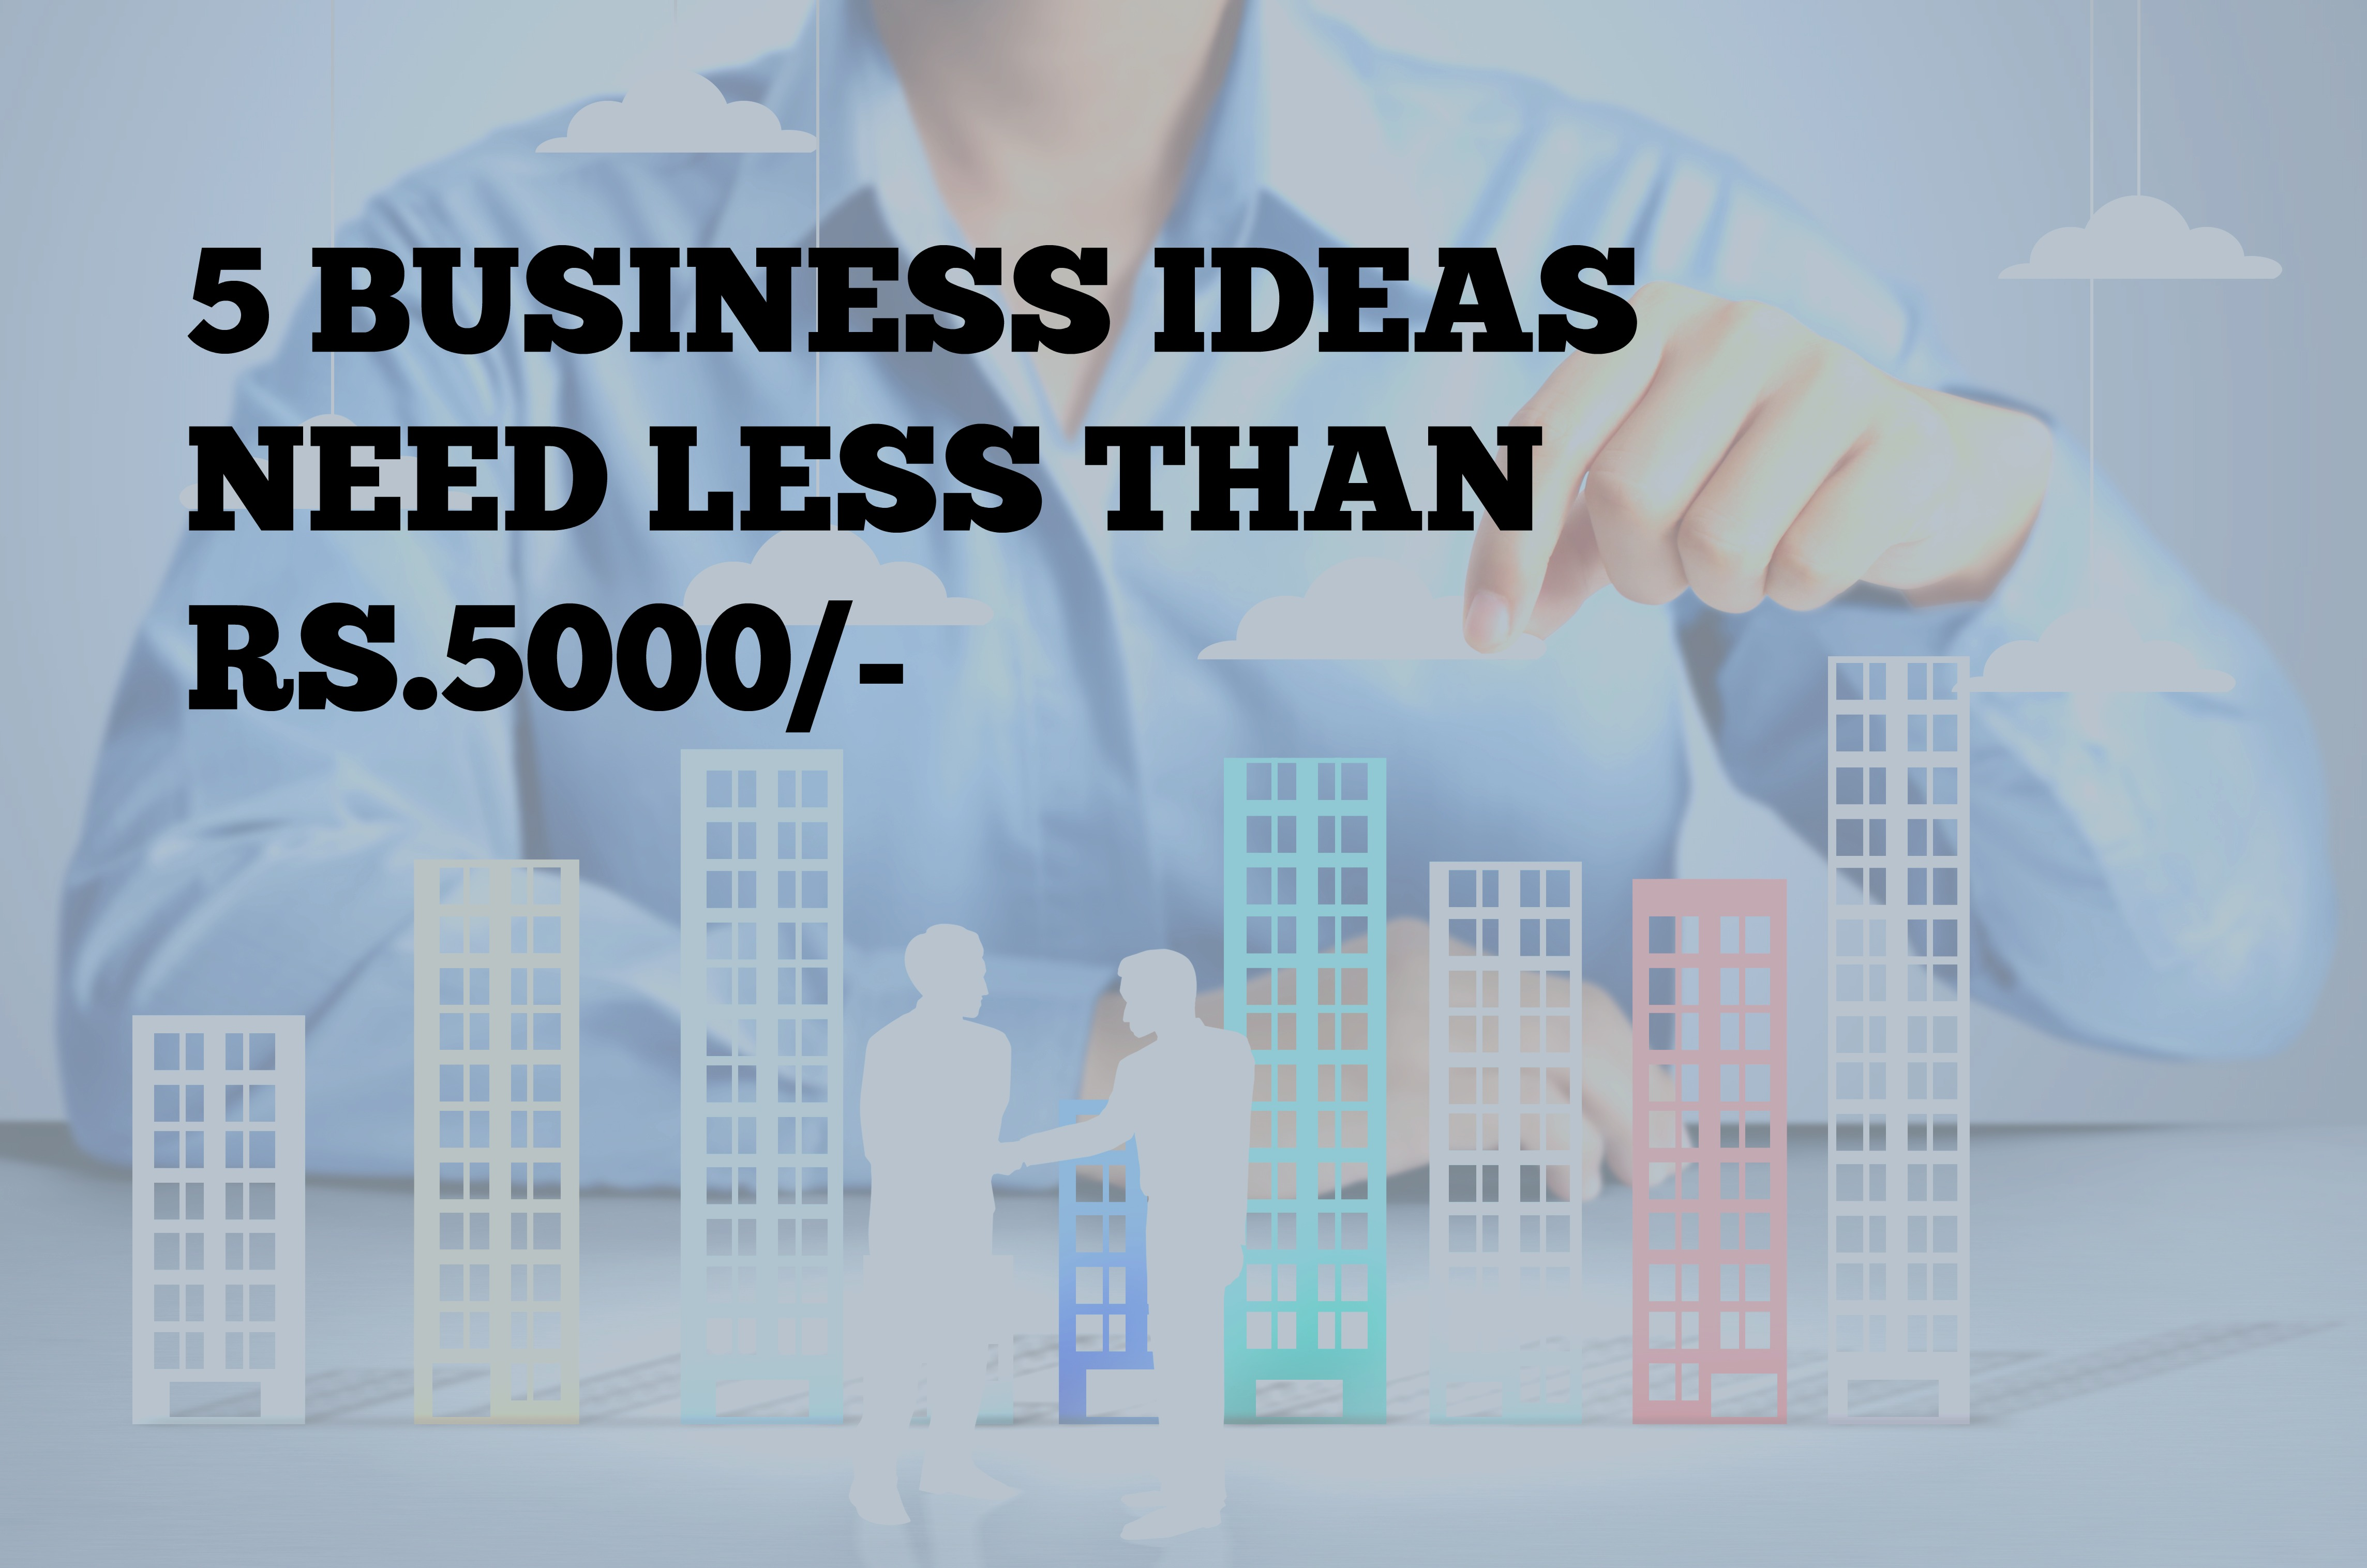 business ideas need less than Rs.5000